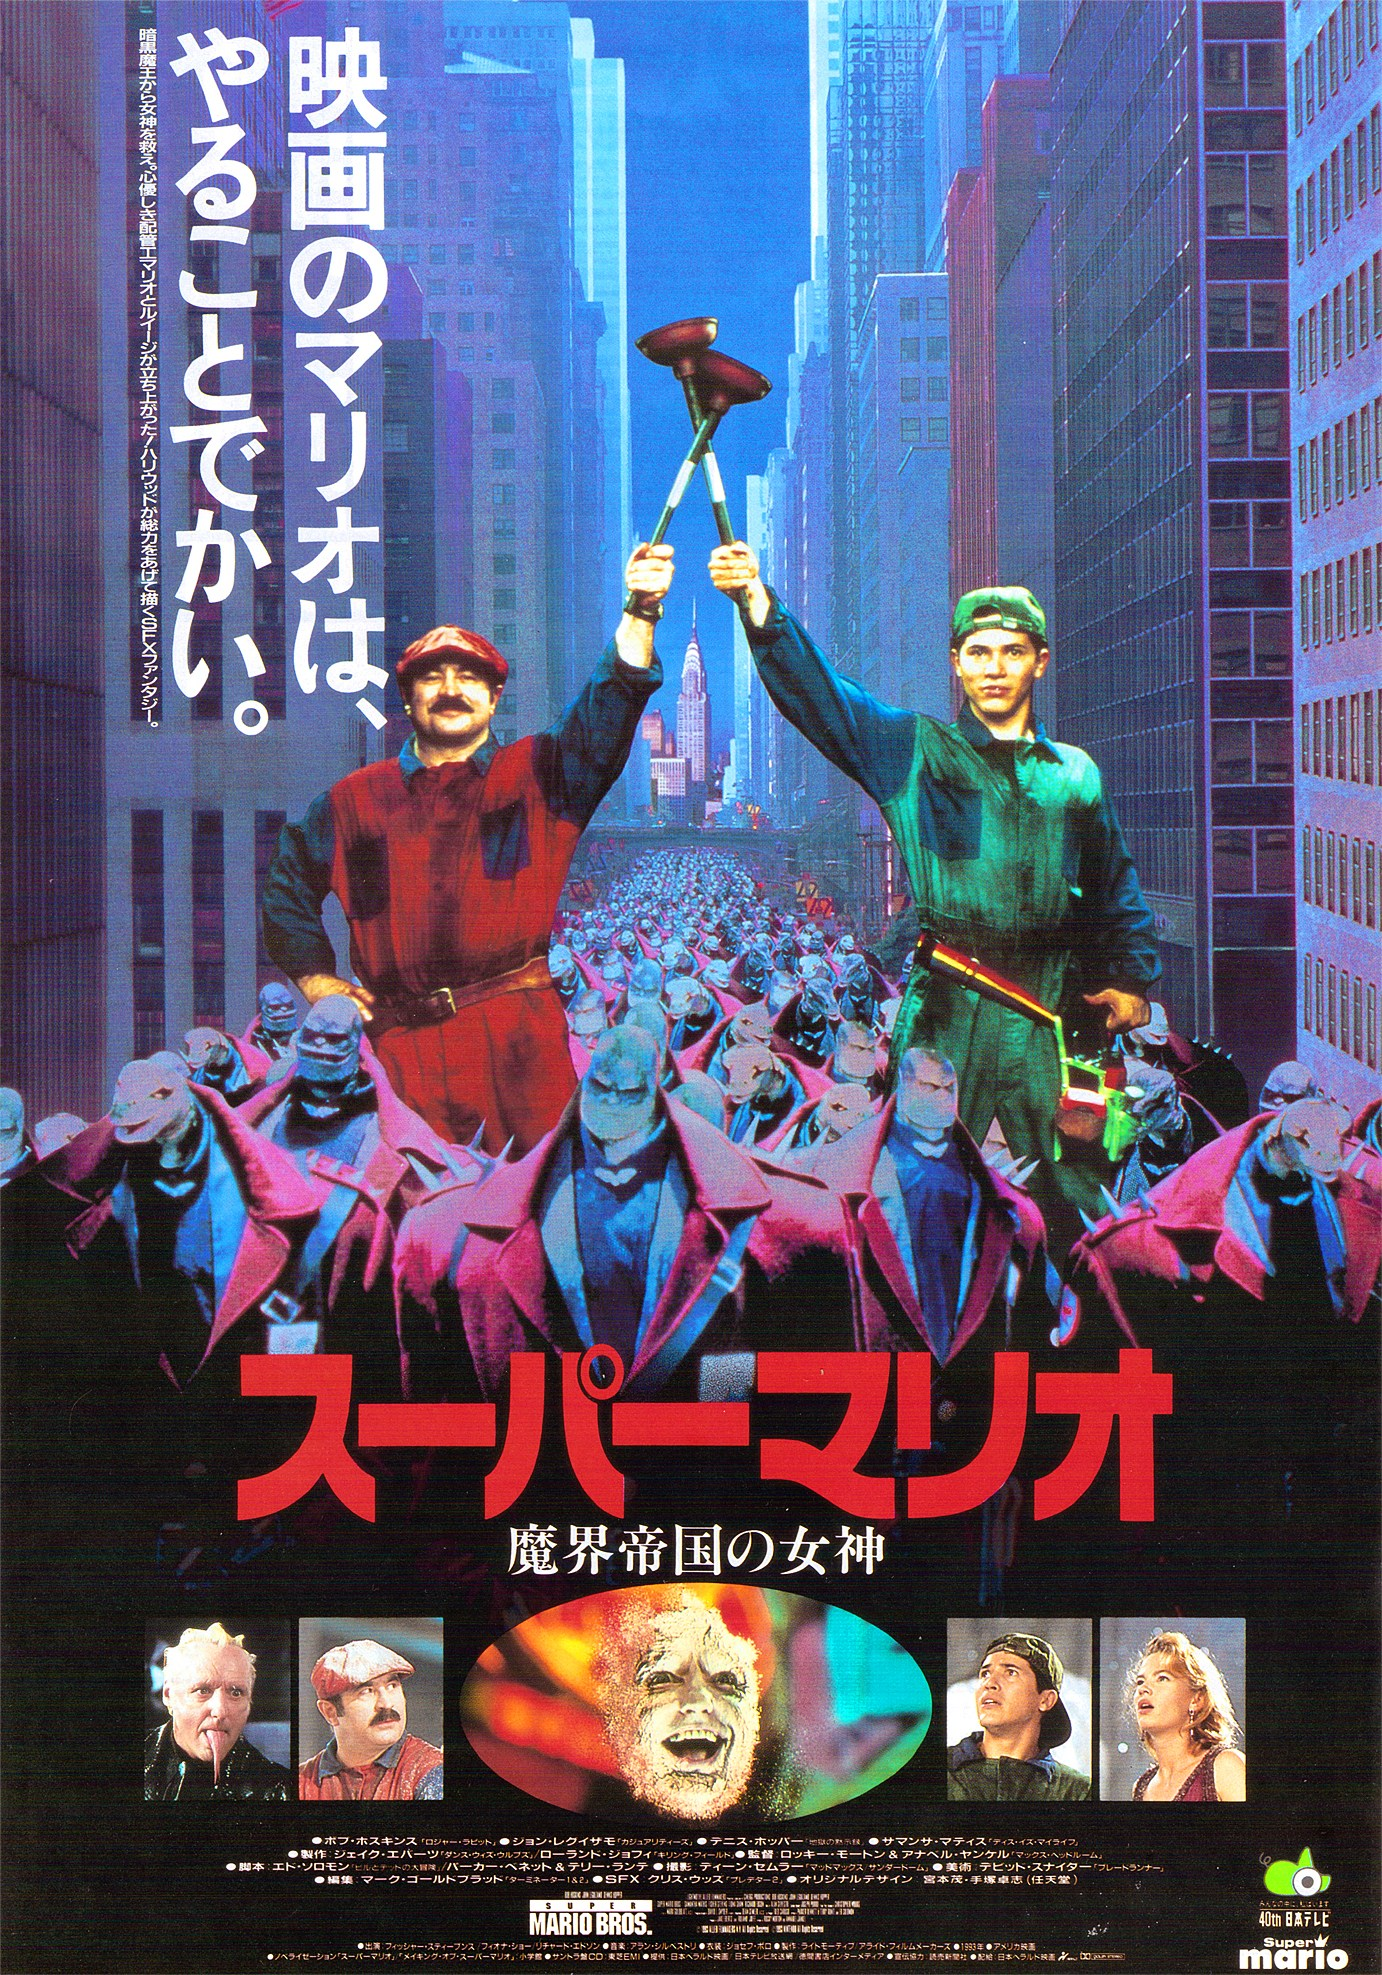 Super-Mario-Bros-japan-flyer.jpg